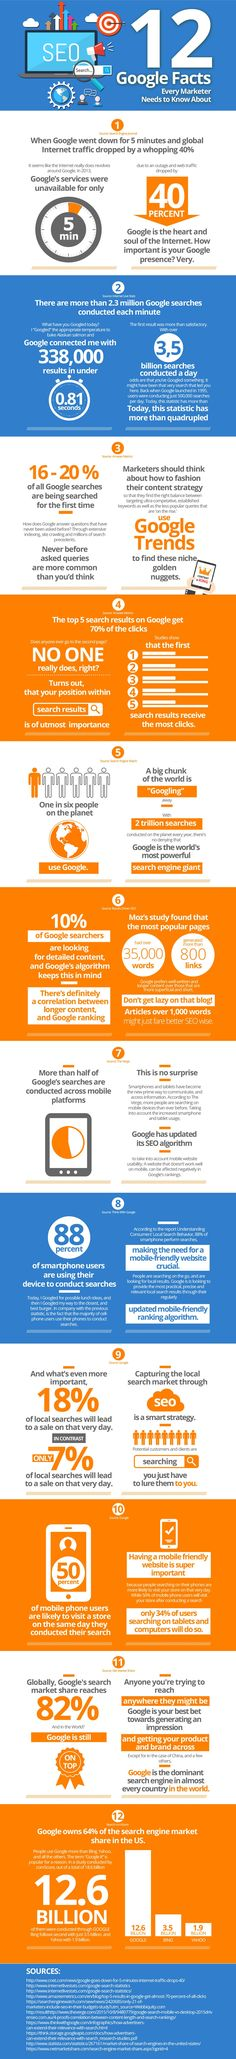 This infographic outlines 12 facts about Google that marketers need to be aware of.